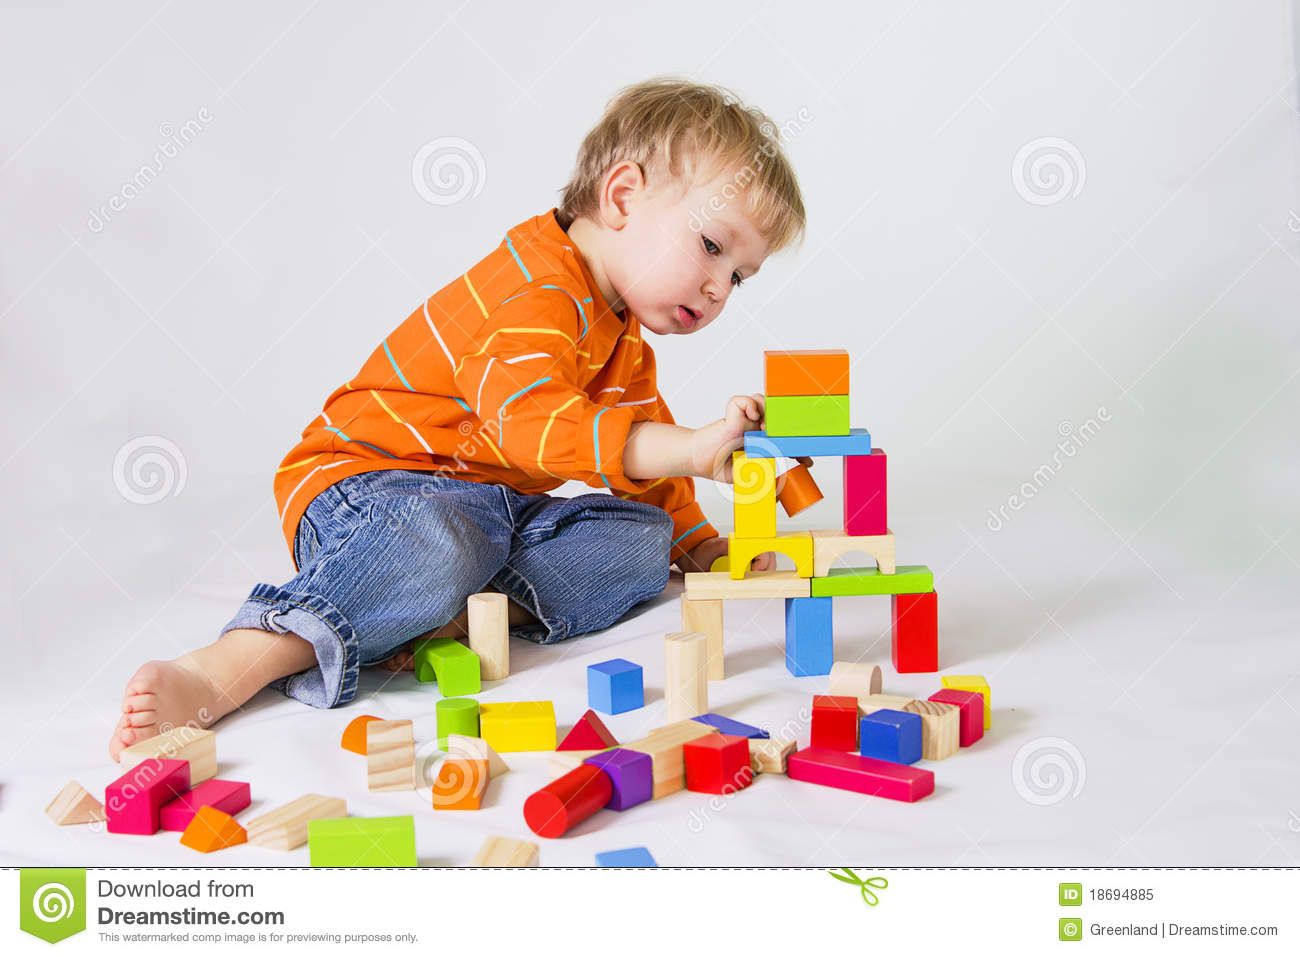 3 Year Old Developmental Toys : Boy playing with wooden blocks royalty free stock photo